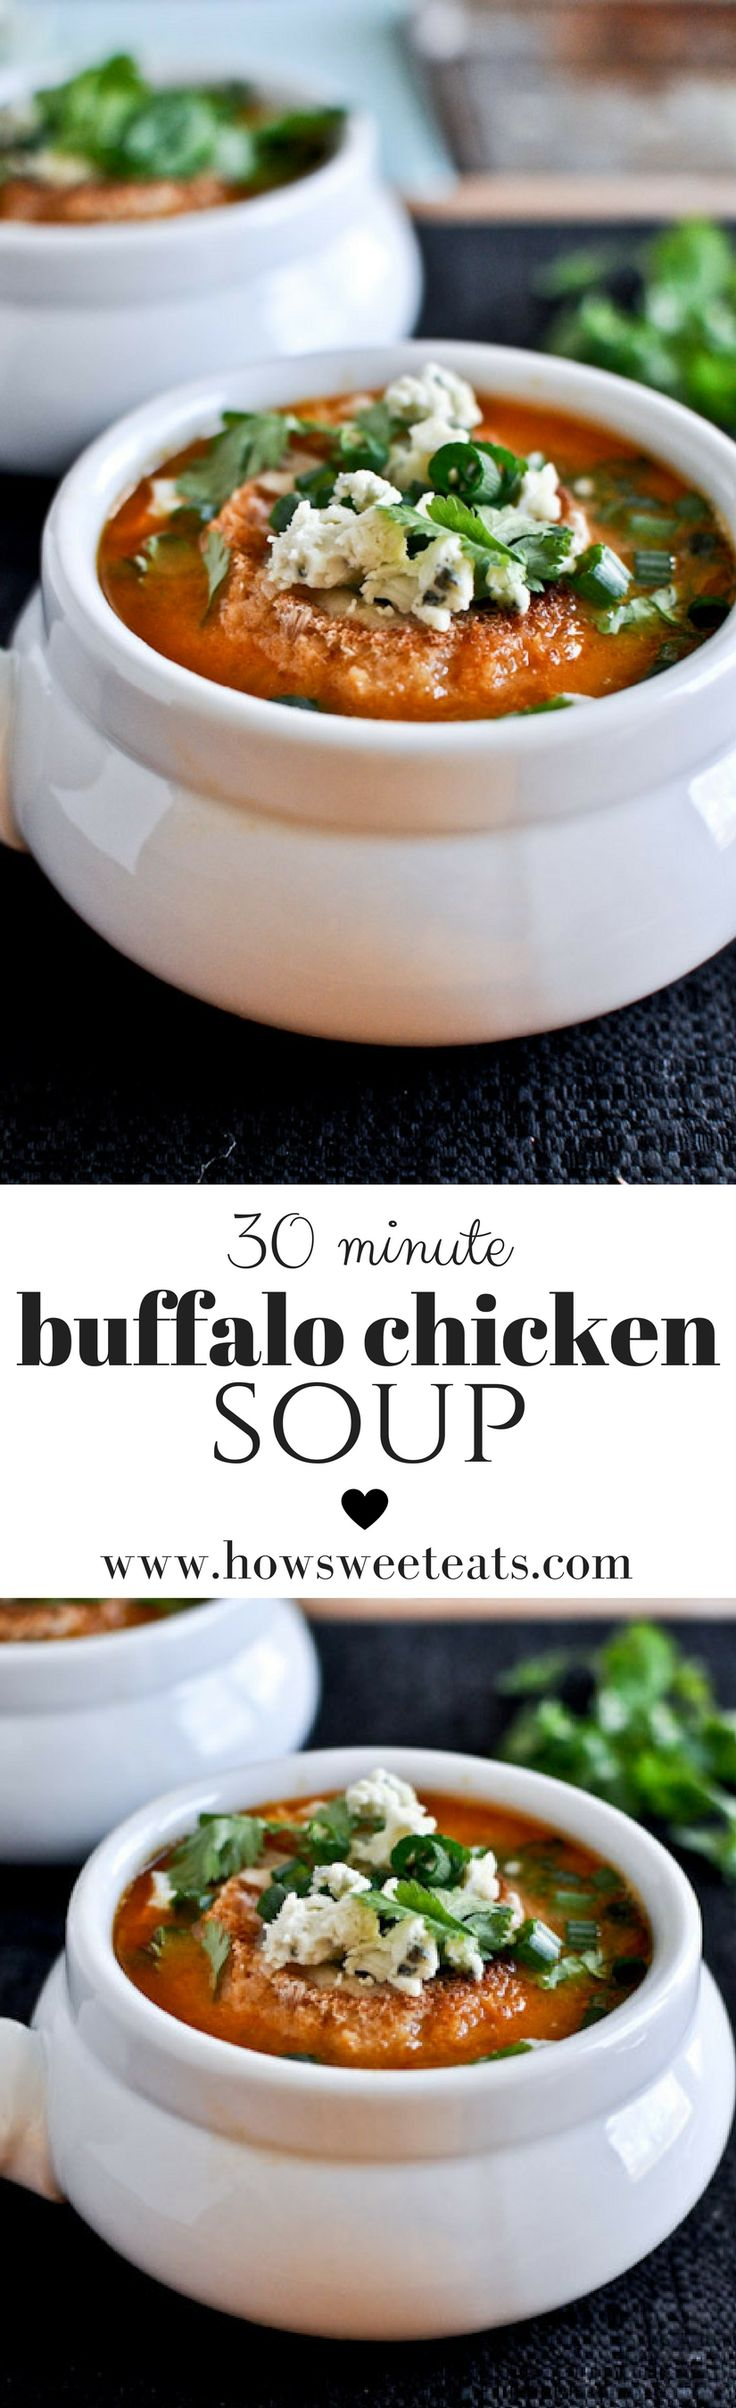 EASY Buffalo Chicken Soup in 30 minutes! I howsweeteats.com @howsweeteats